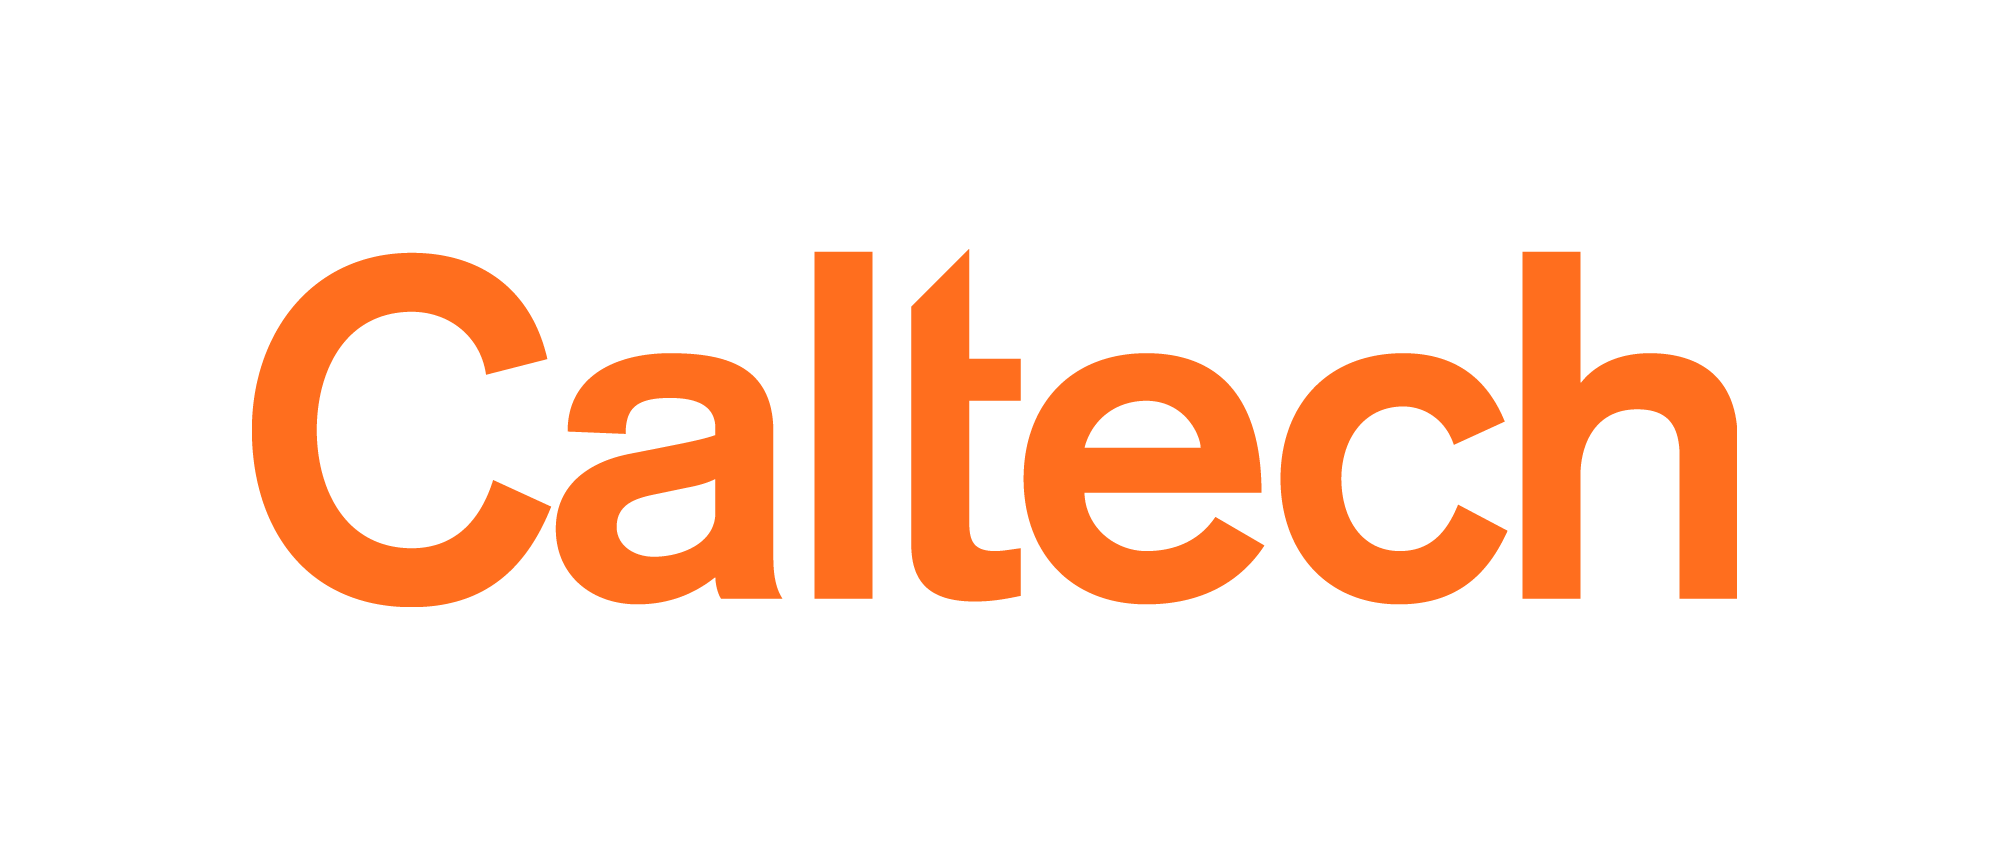 Caltech_LOGO-Orange_RGB